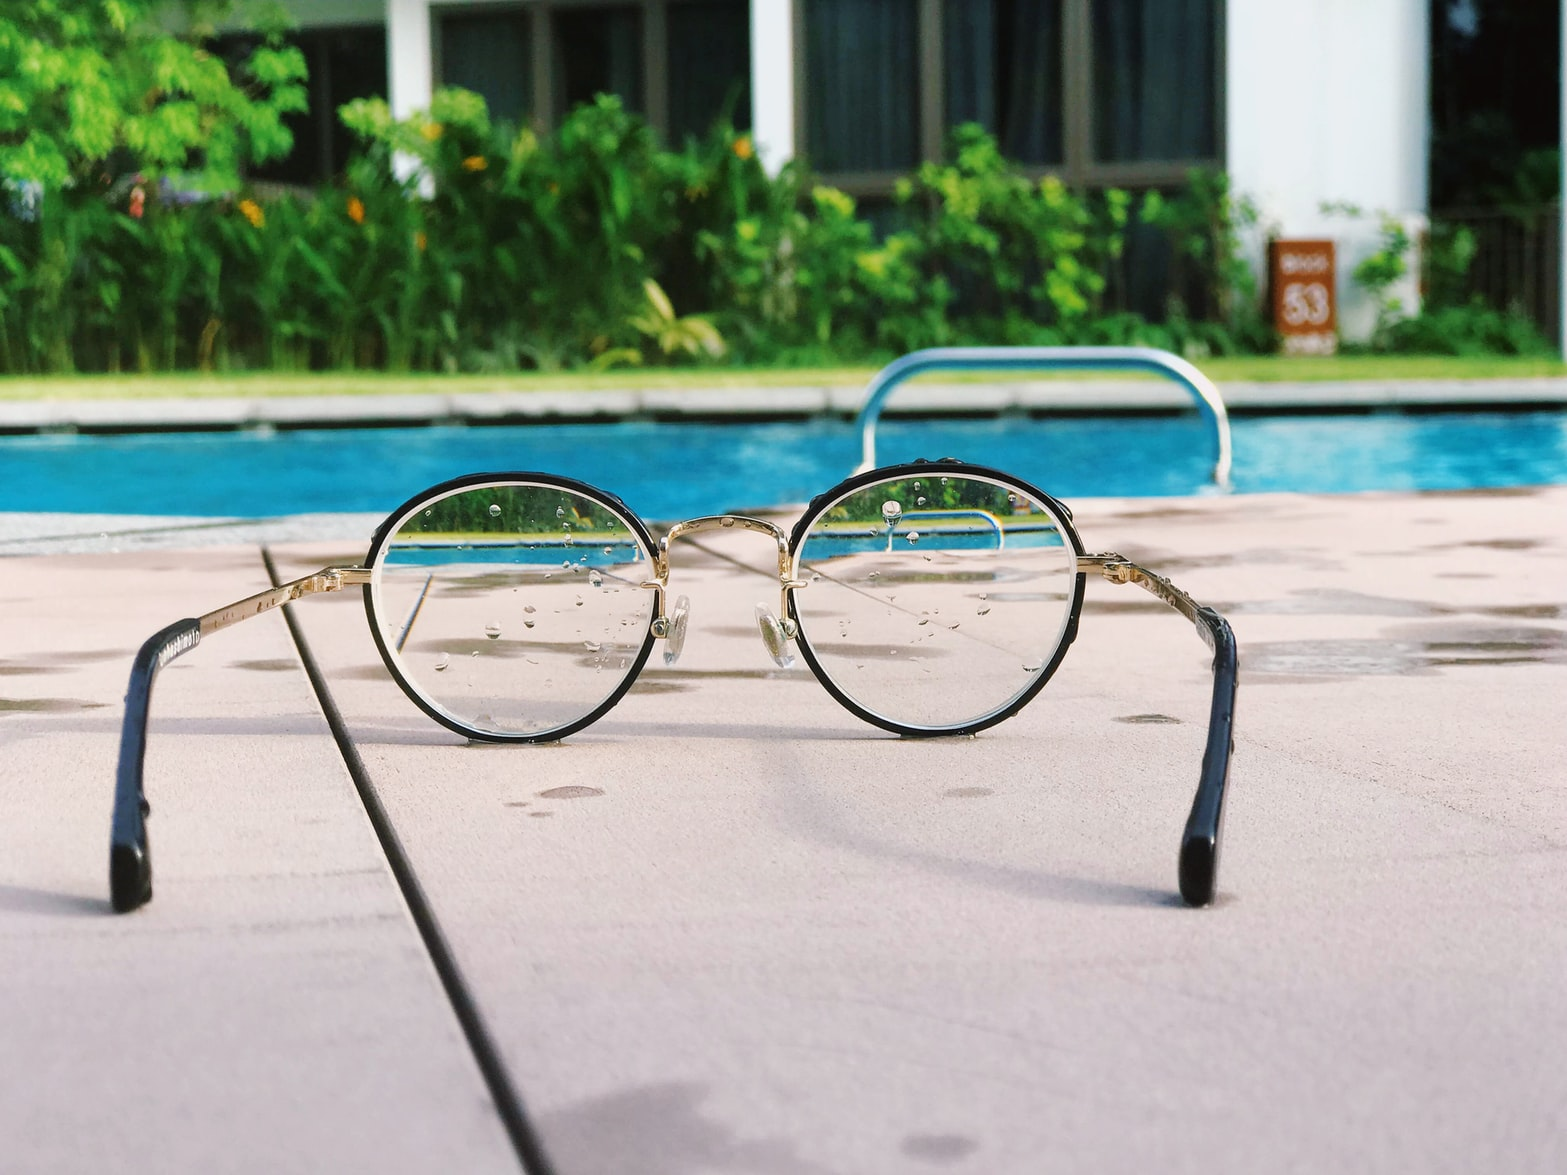 View of a swimming pool through eyeglasses on the pool deck, because the SightPlan blog brings industry news into focus